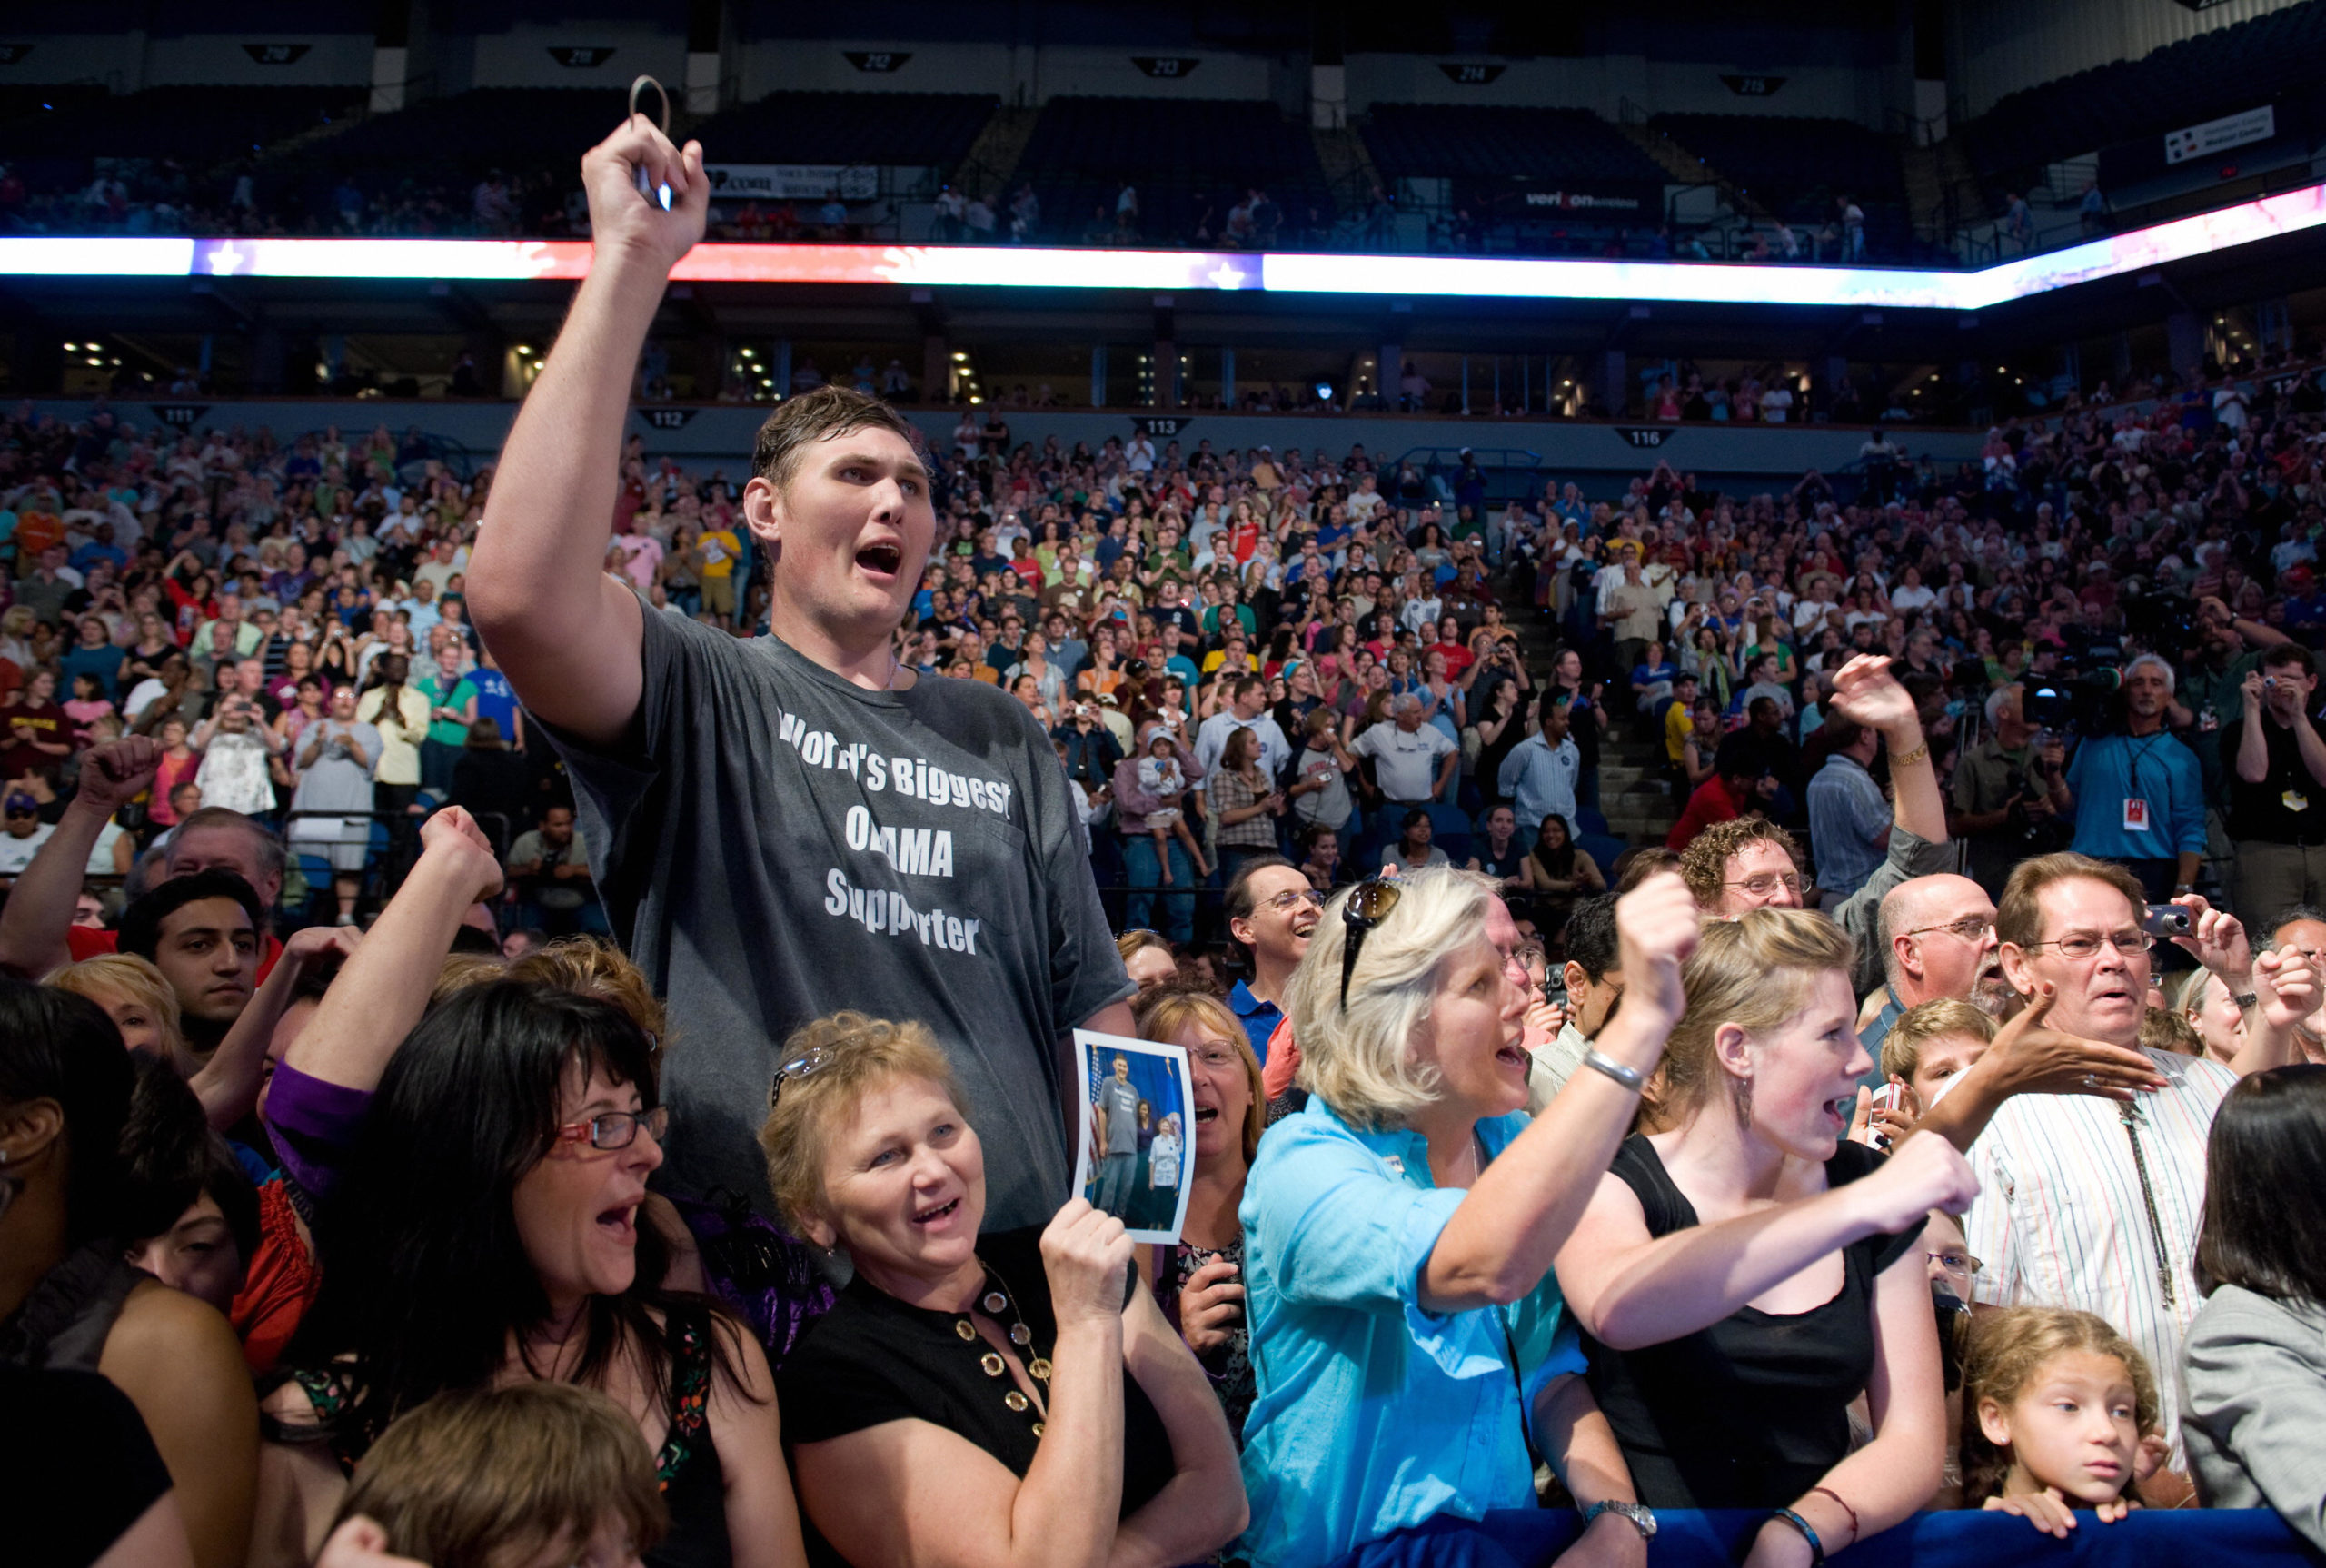 Seven-foot, 8-inch (2.3-meter) Igor Vovkovinskiy, 27, of Rochester, Minnesota, cheers as US President Barack Obama arrives to speak about healthcare reform during a rally at the Target Center in Minneapolis, Minnesota, September 12, 2009. AFP PHOTO / Saul LOEB (Photo credit should read SAUL LOEB/AFP via Getty Images)